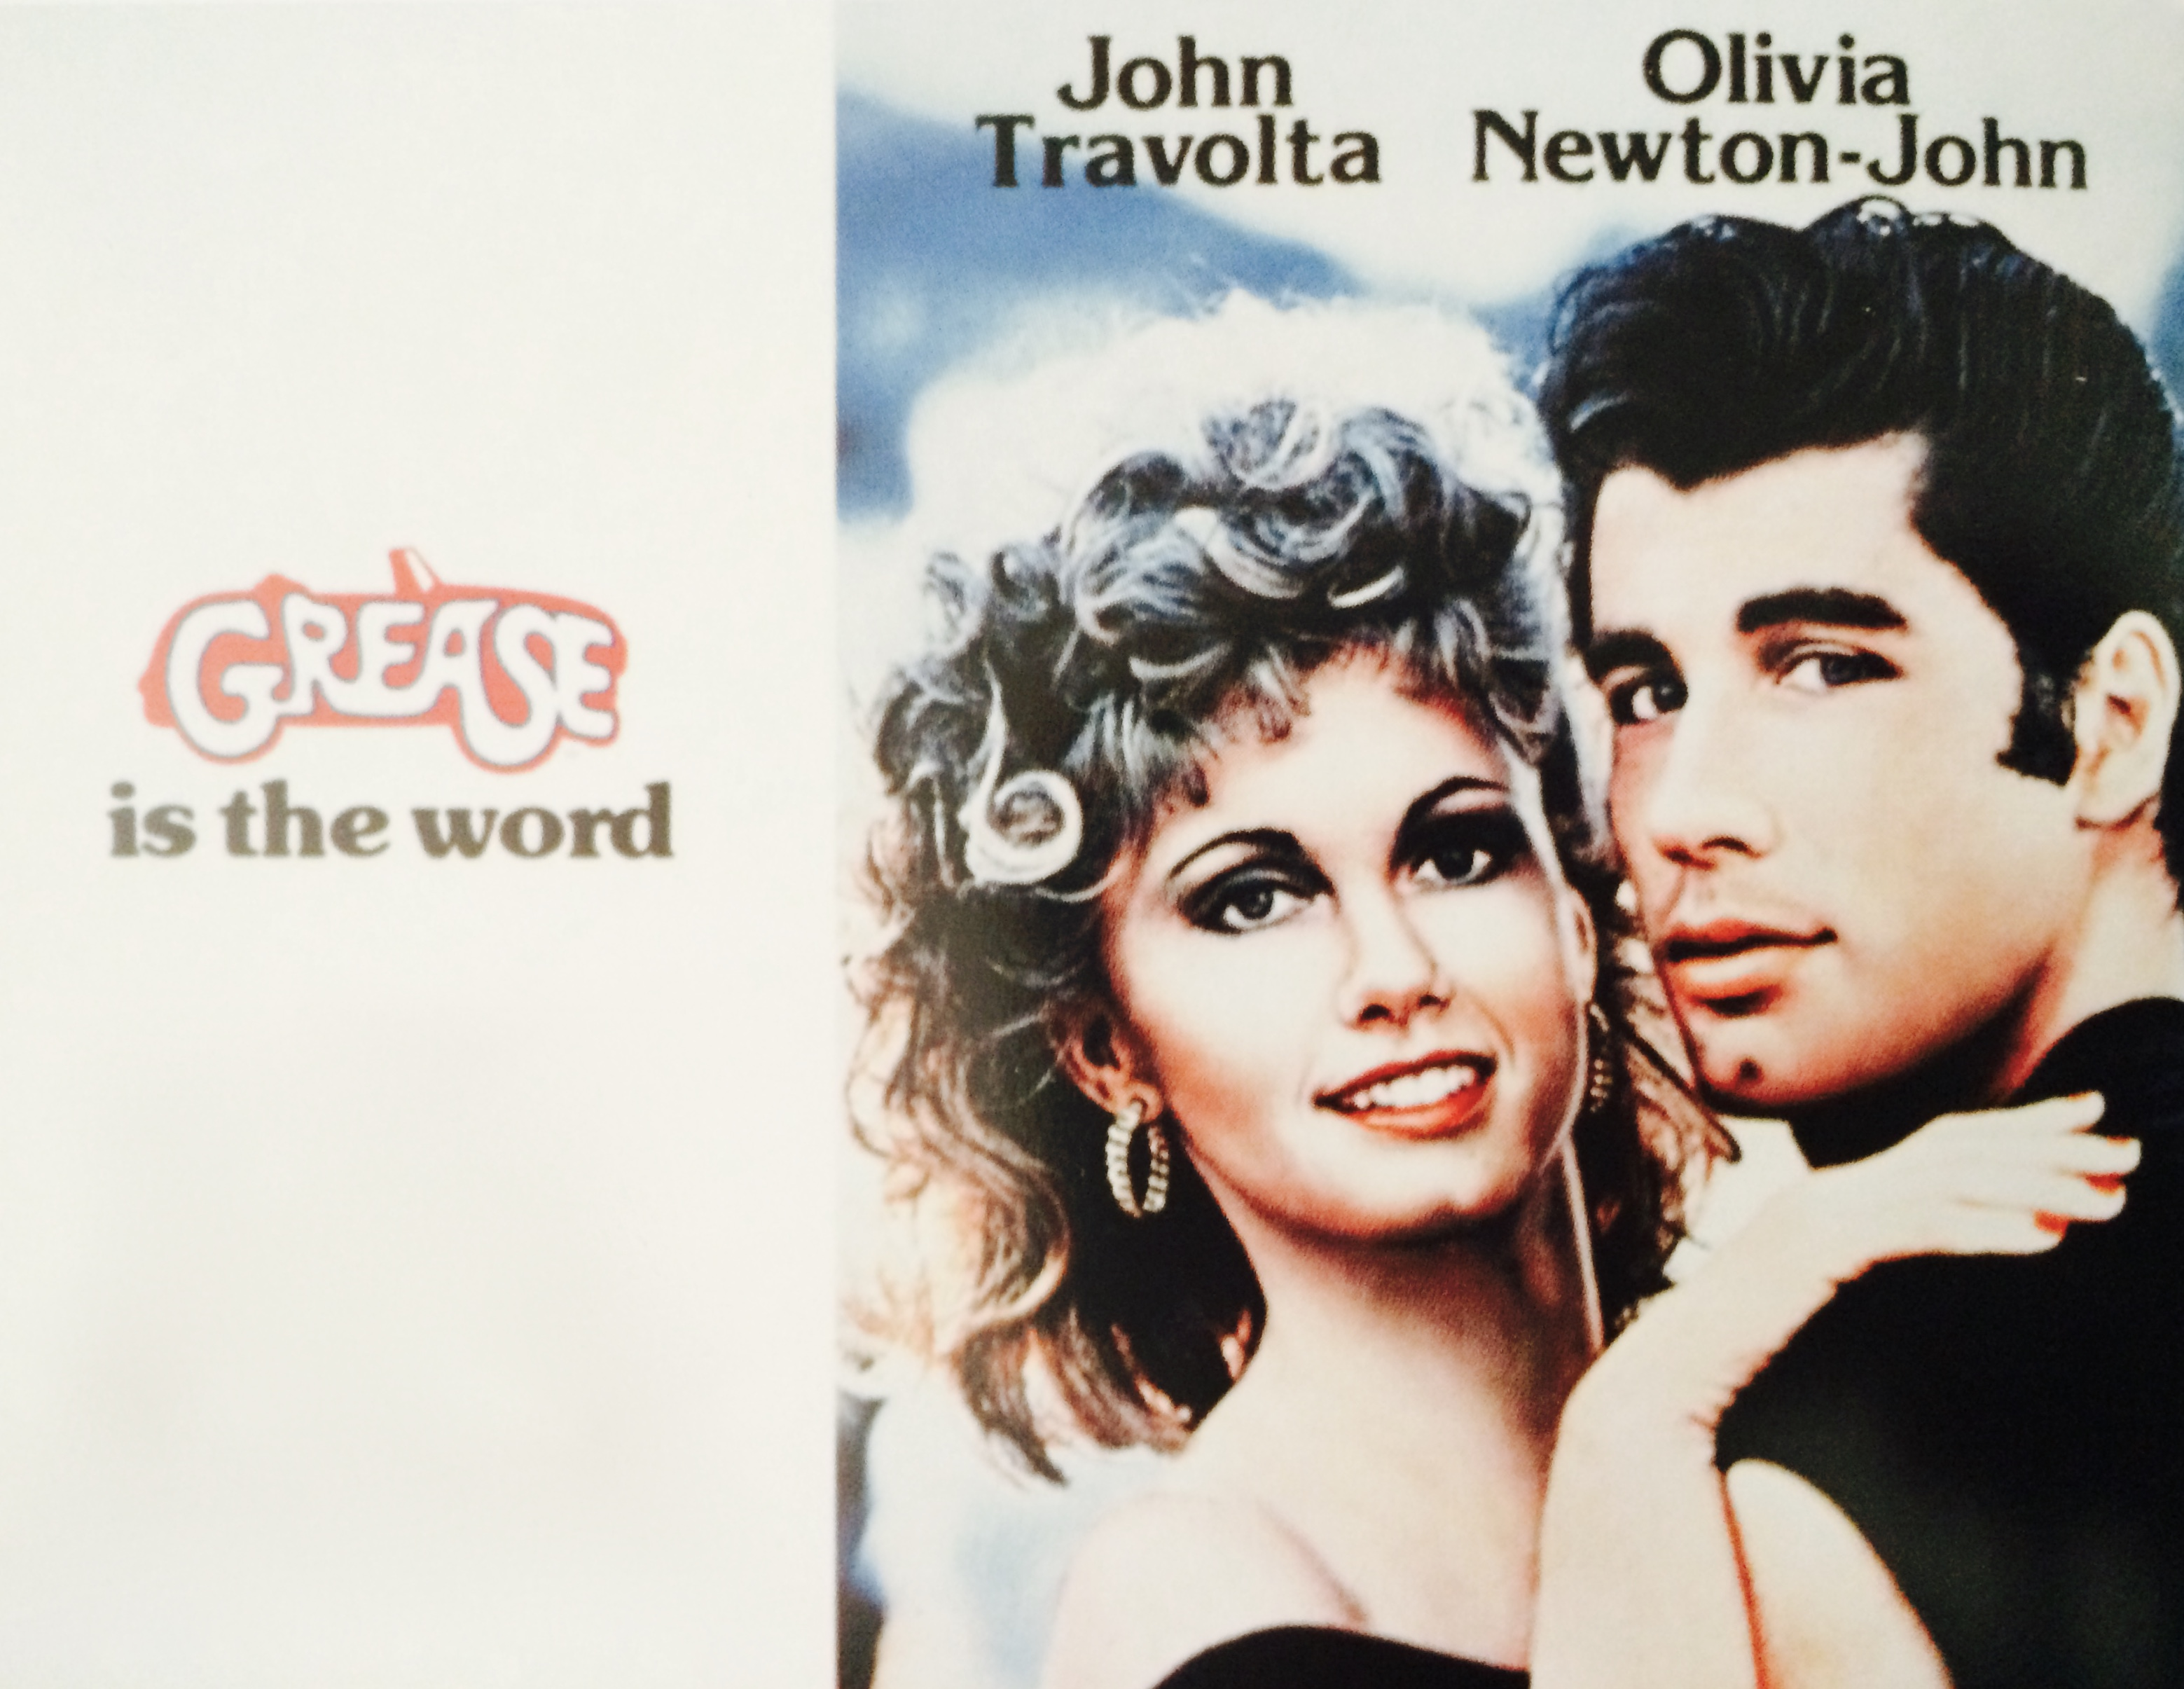 Secret Meaning Of The Movie Grease Greek Gods Paradise